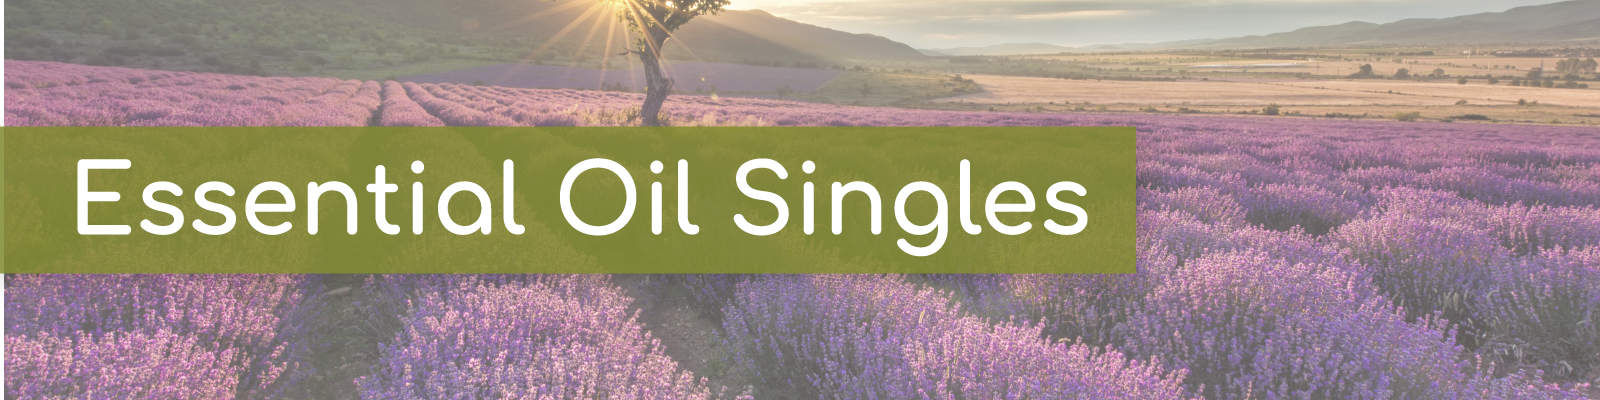 Essential oil singles collection